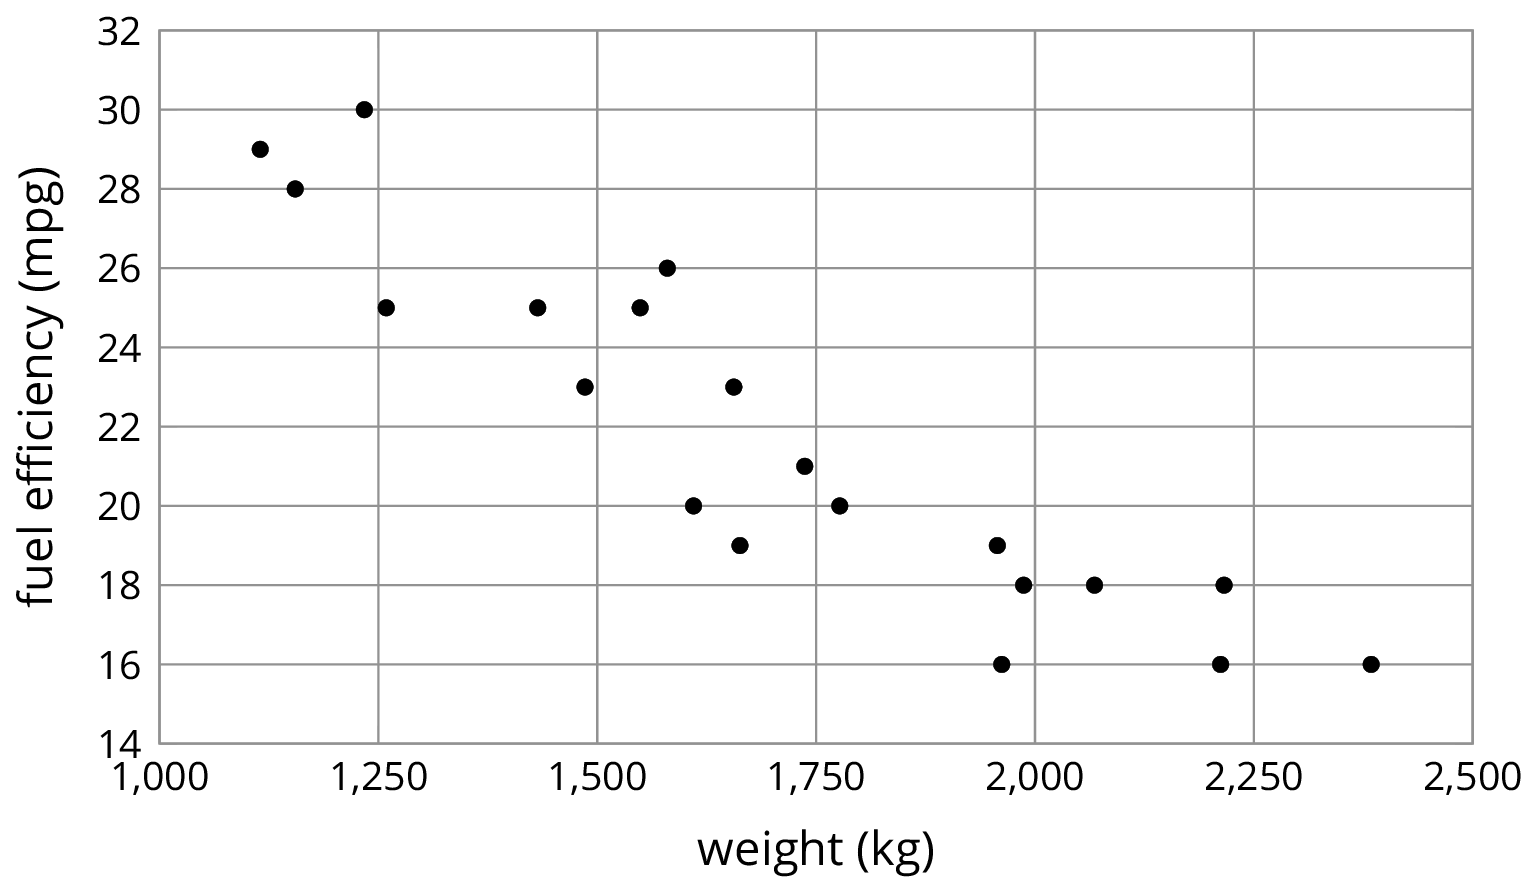 "A scatterplot with 20 data points. The horizontal axis is labeled ""weight, in kilograms"" and the numbers 1,000 through 2,500, in increments of 250, are indicated. The vertical axis is labeled ""fuel efficiency, in miles per gallon"" and the numbers 14 through 32, in increments of 2, are indicated. The graph shows the trend of the 20 data points moving linearly downward and to the right. The approximate coordinates of 11 selected data points are as follows:  1,130 comma 28. 1,240 comma 30. 1,400 comma 25. 1,490 comma 23. 1,550 comma 25. 1,590 comma 26. 1,650 comma 19. 1,740 comma 21. 1,775 comma 20. 1,950 comma 19. 2,200 comma 16."